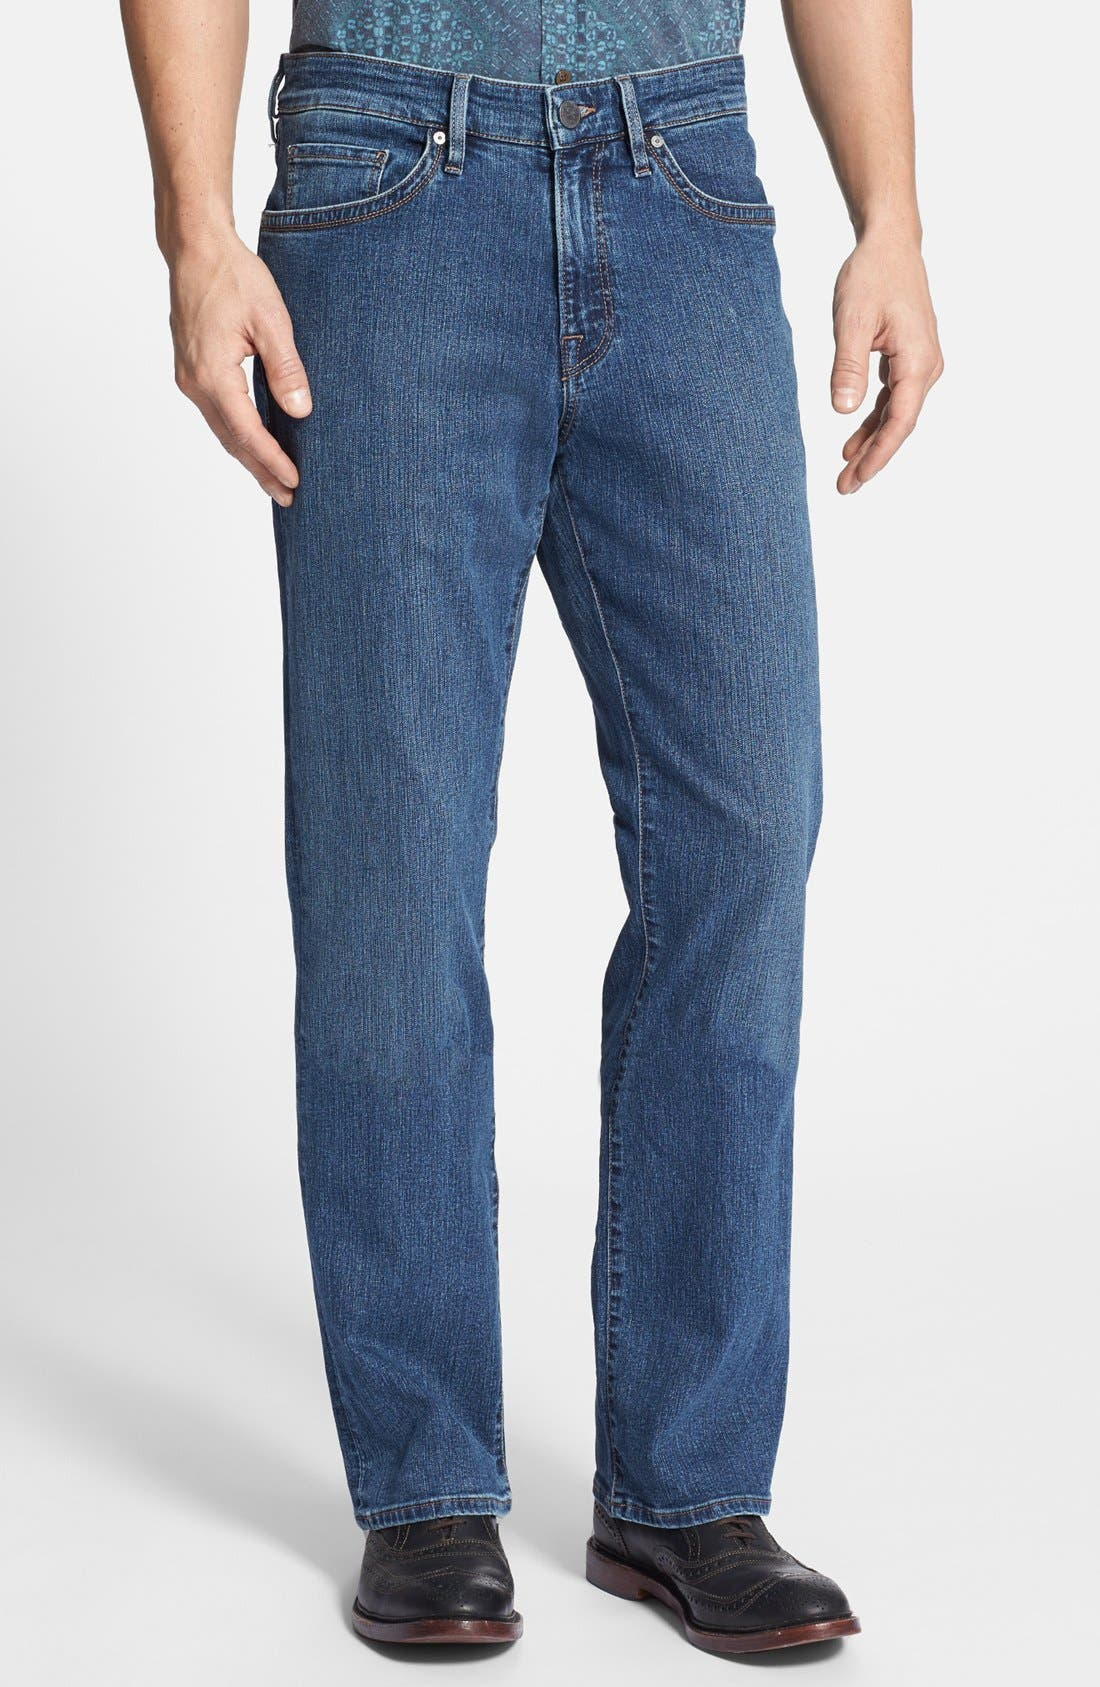 34 HERITAGE 'Charisma' Classic Relaxed Fit Jeans, Main, color, MID COMFORT